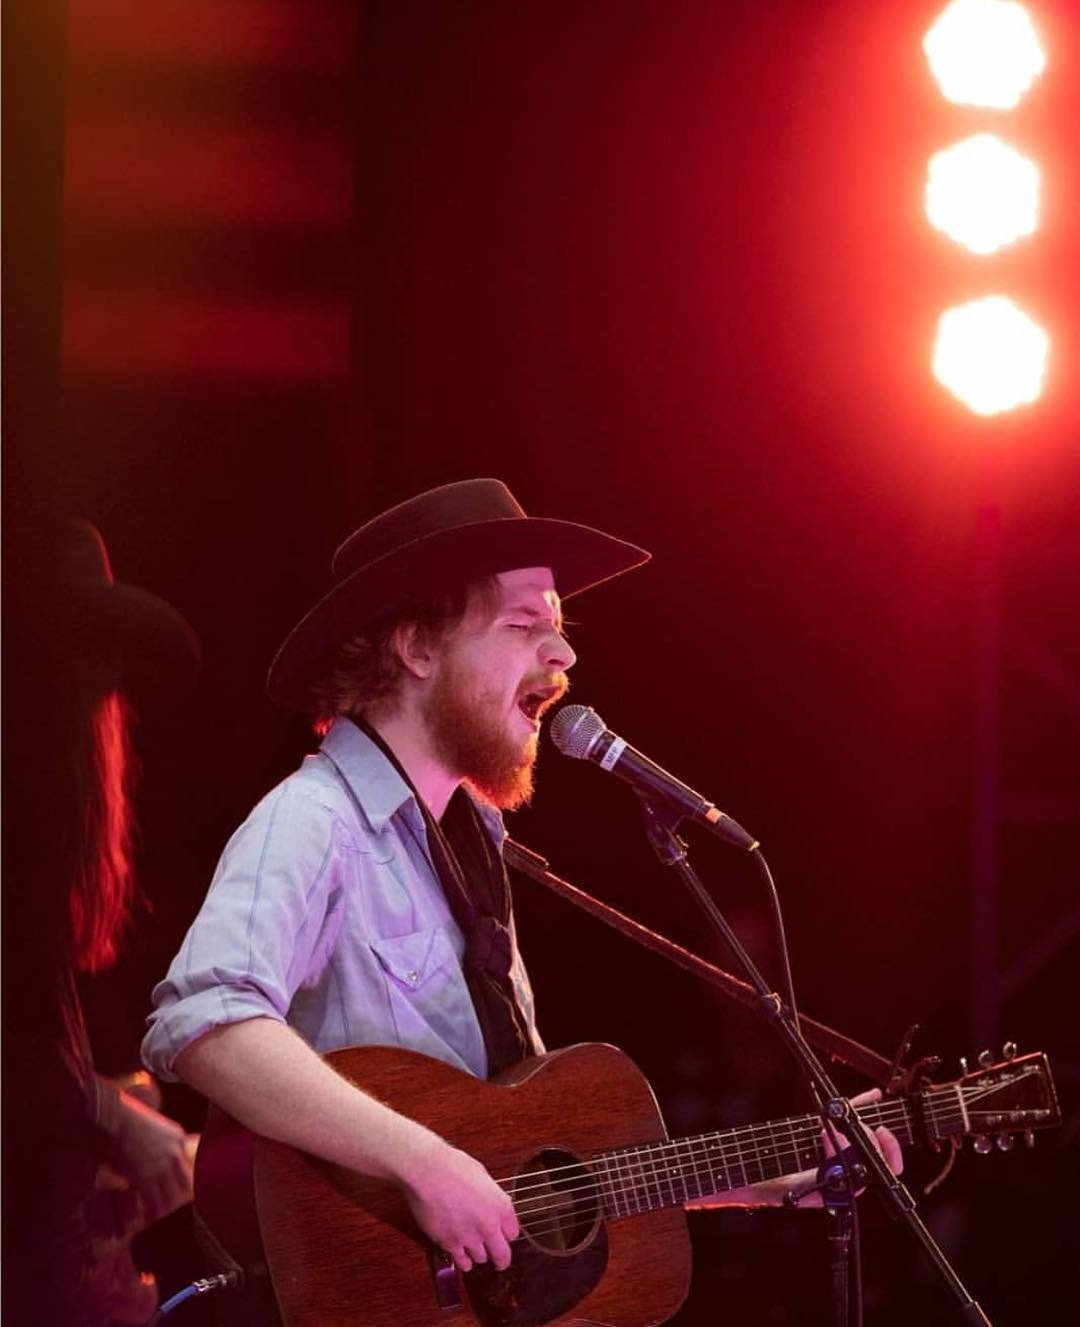 Saskatchewan's colterwall on stage at the 35th annual cowboypoetrygathering in Elko, Nevada. We sent lizbeddall down to travelnevada to investigate the gathering, stay tuned for her story on CanGeoTravel.ca!